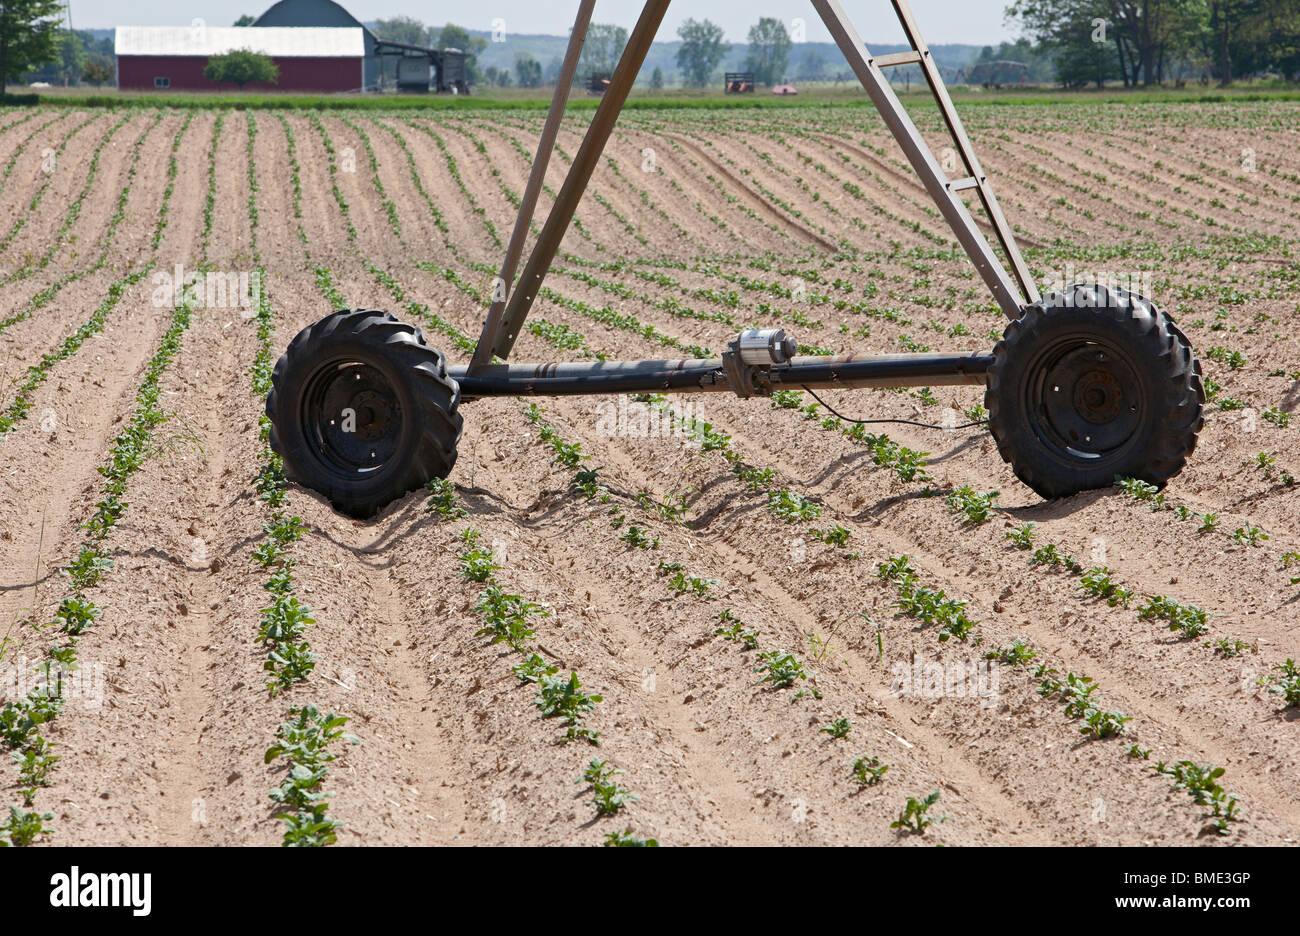 Mecosta, Michigan - The wheels of an irrigation sprinkler system in rows of potato plants on a large farm in western - Stock Image